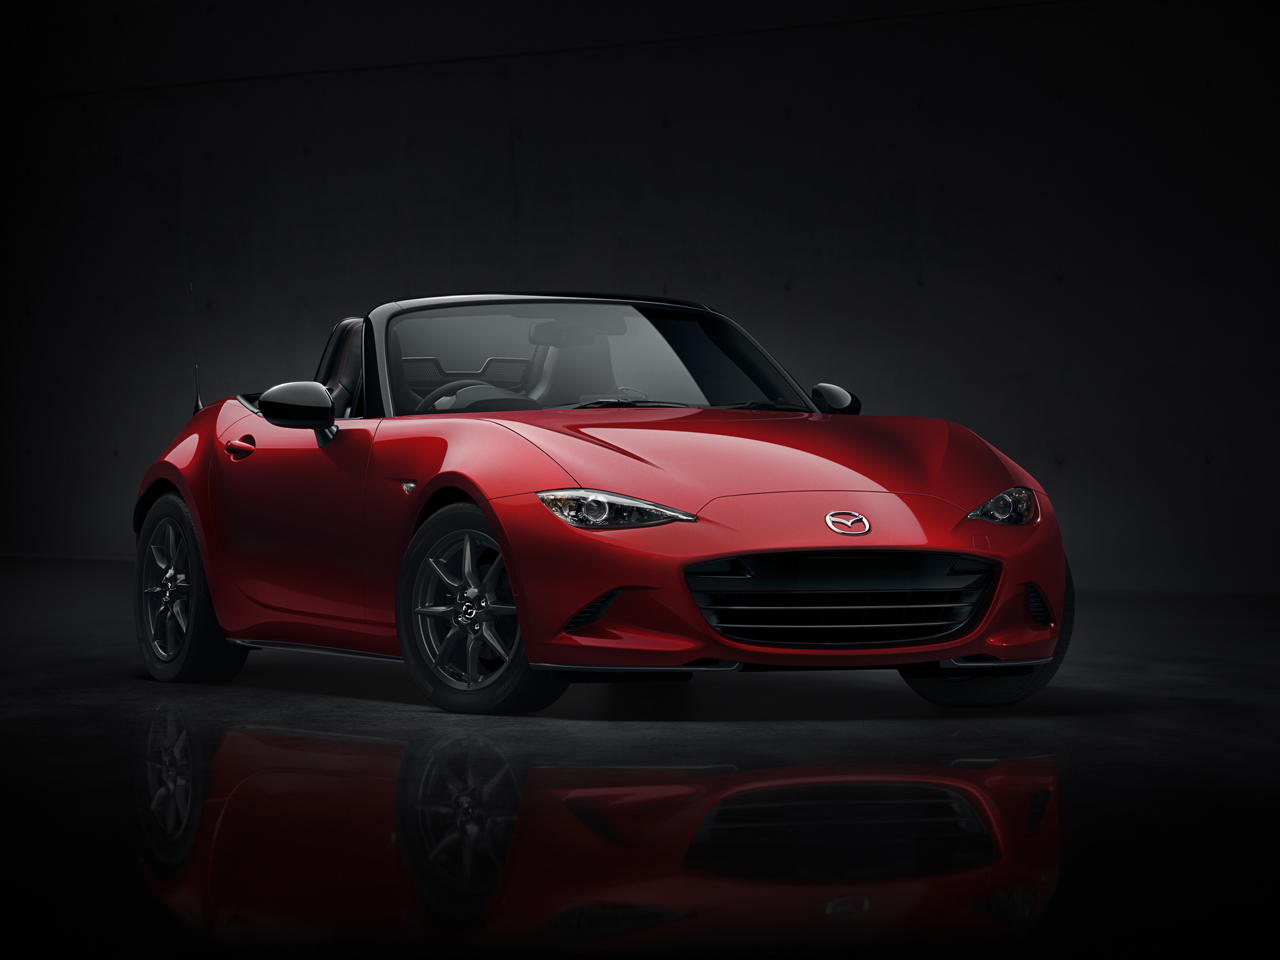 <b>MAZDA MX-5: NO MORE ...</b>